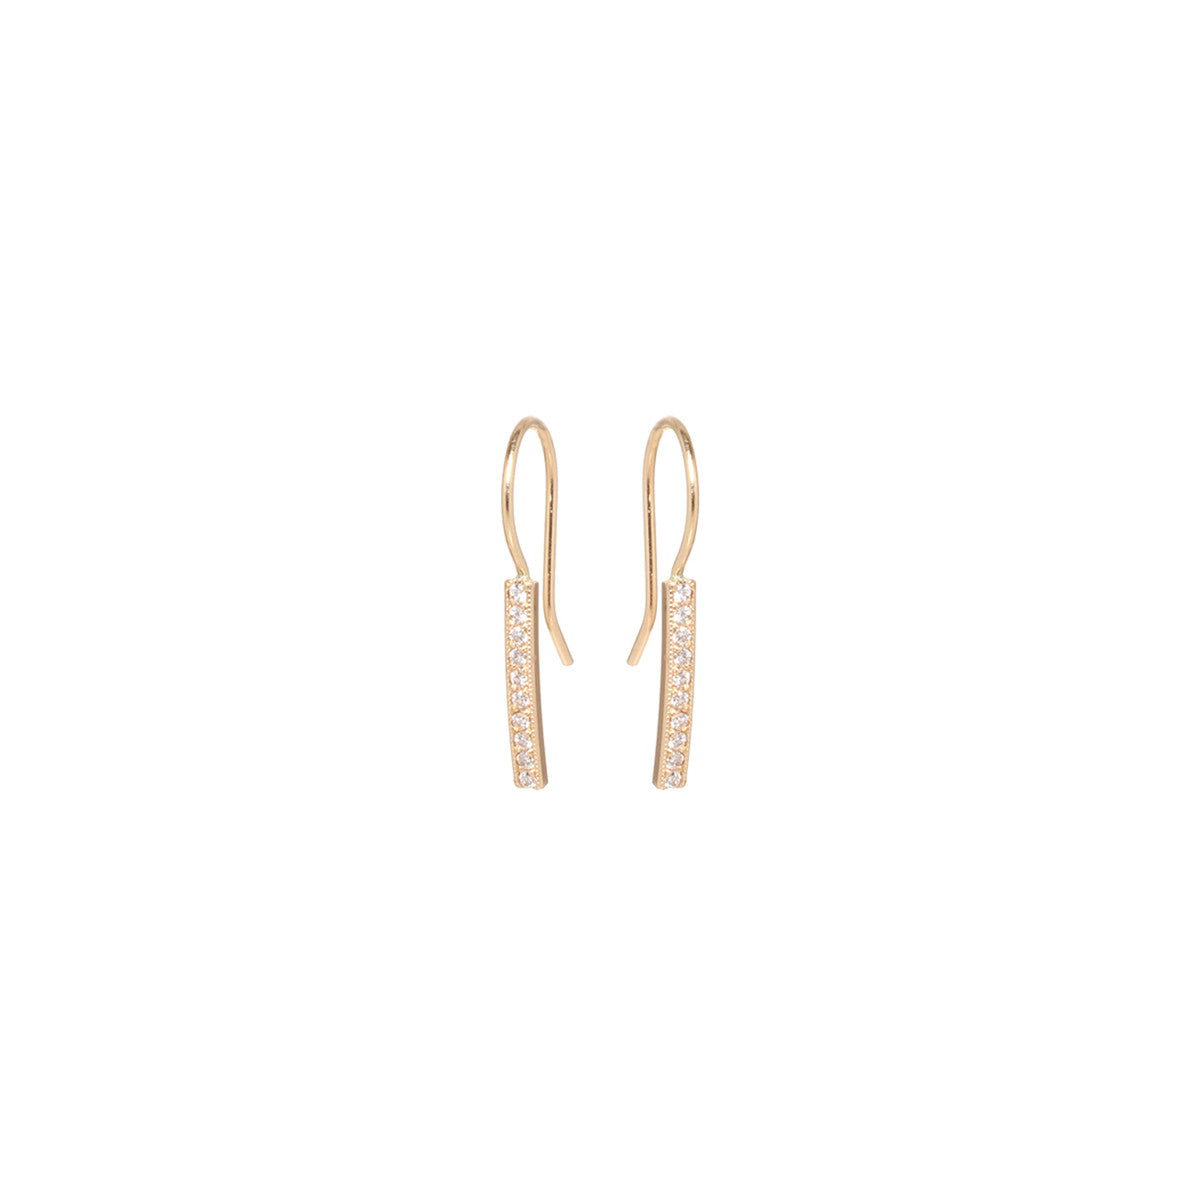 Zoë Chicco 14kt Yellow Gold Small Pave Bar Earrings